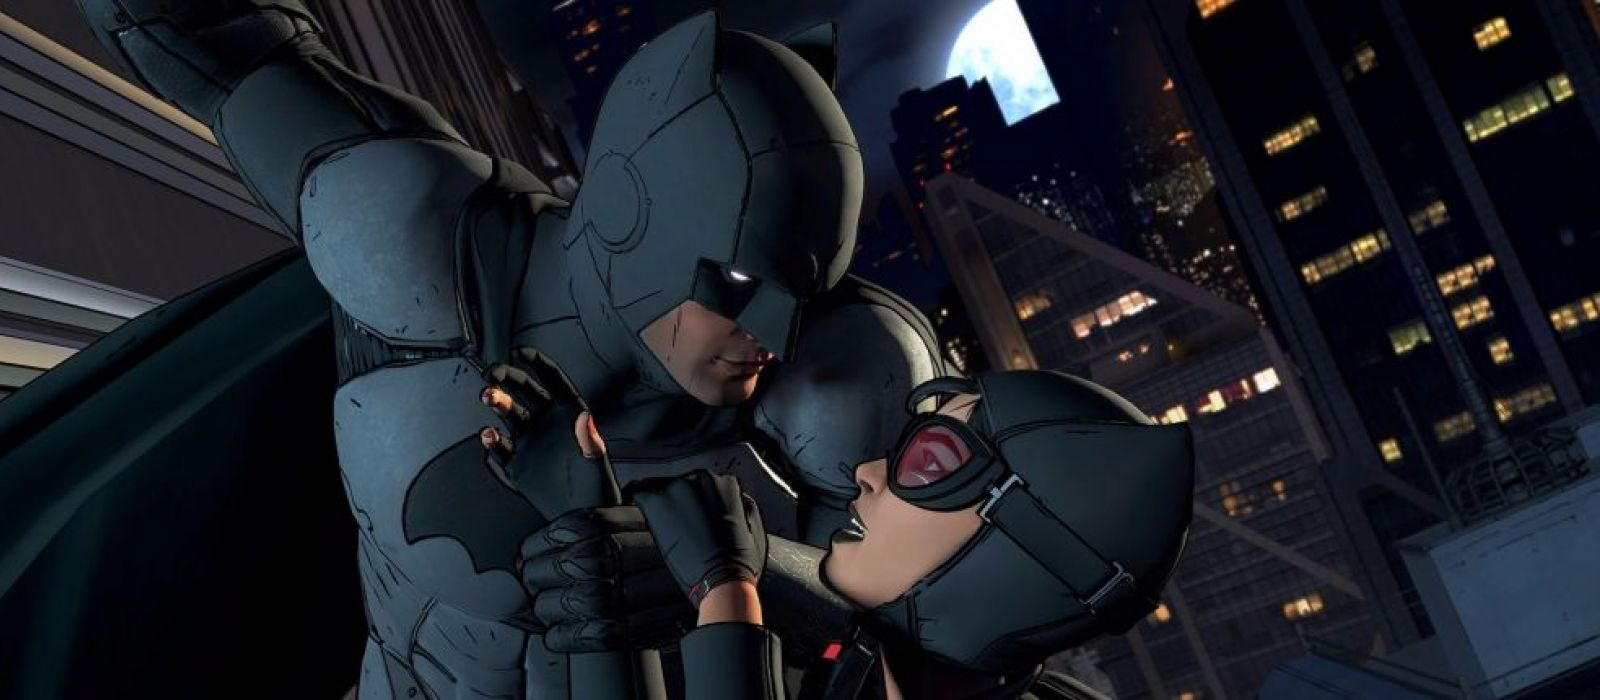 Telltale анонсировала новых Batman, The Walking Dead и The Wolf Among Us